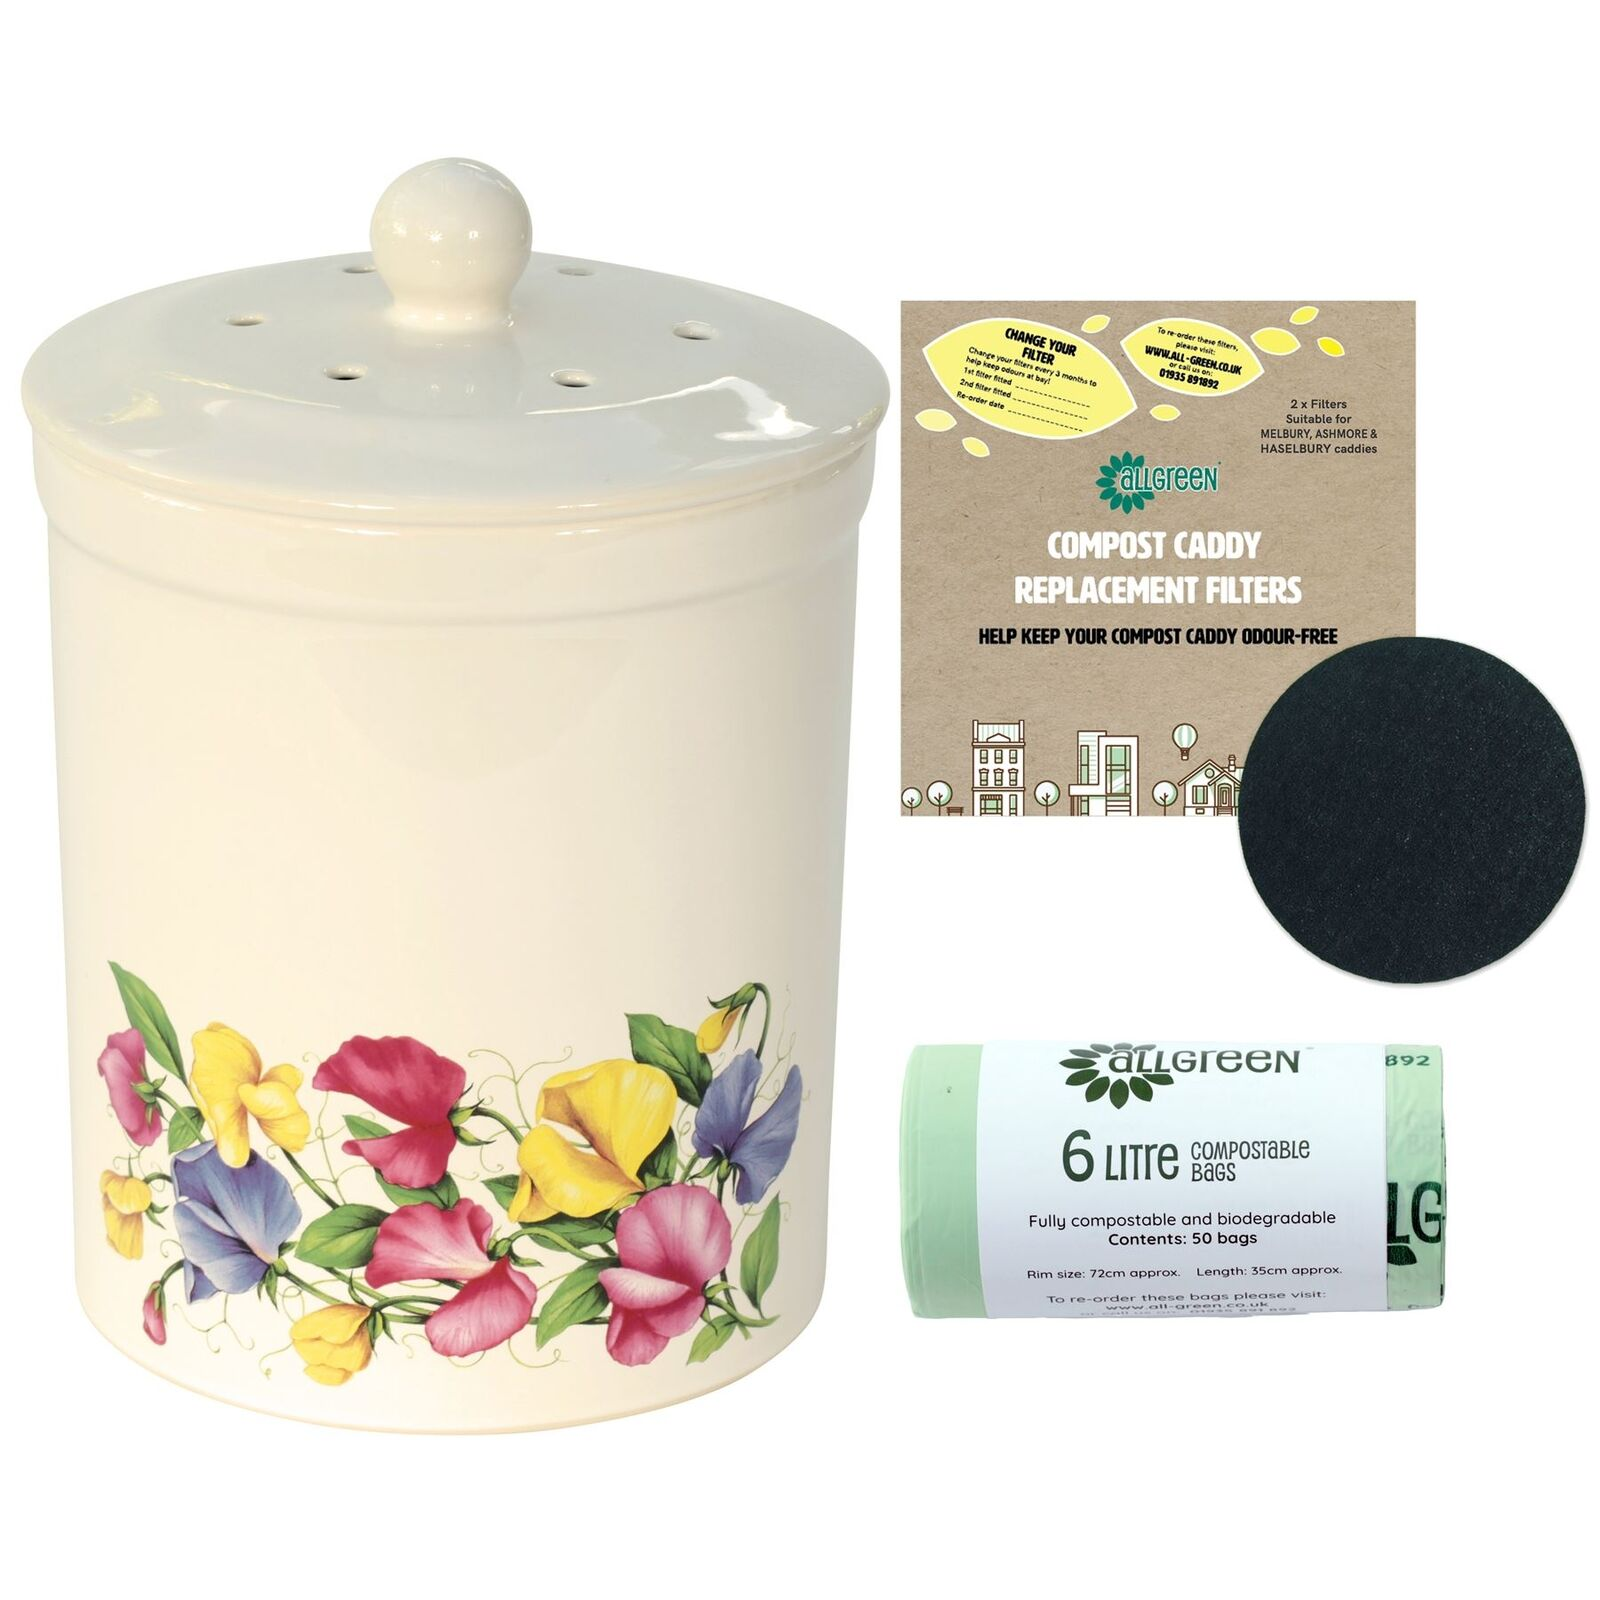 3L Ashmore Sweetpea Ceramic Compost Caddy, 2 Filters & 50x6L Compostable Bags